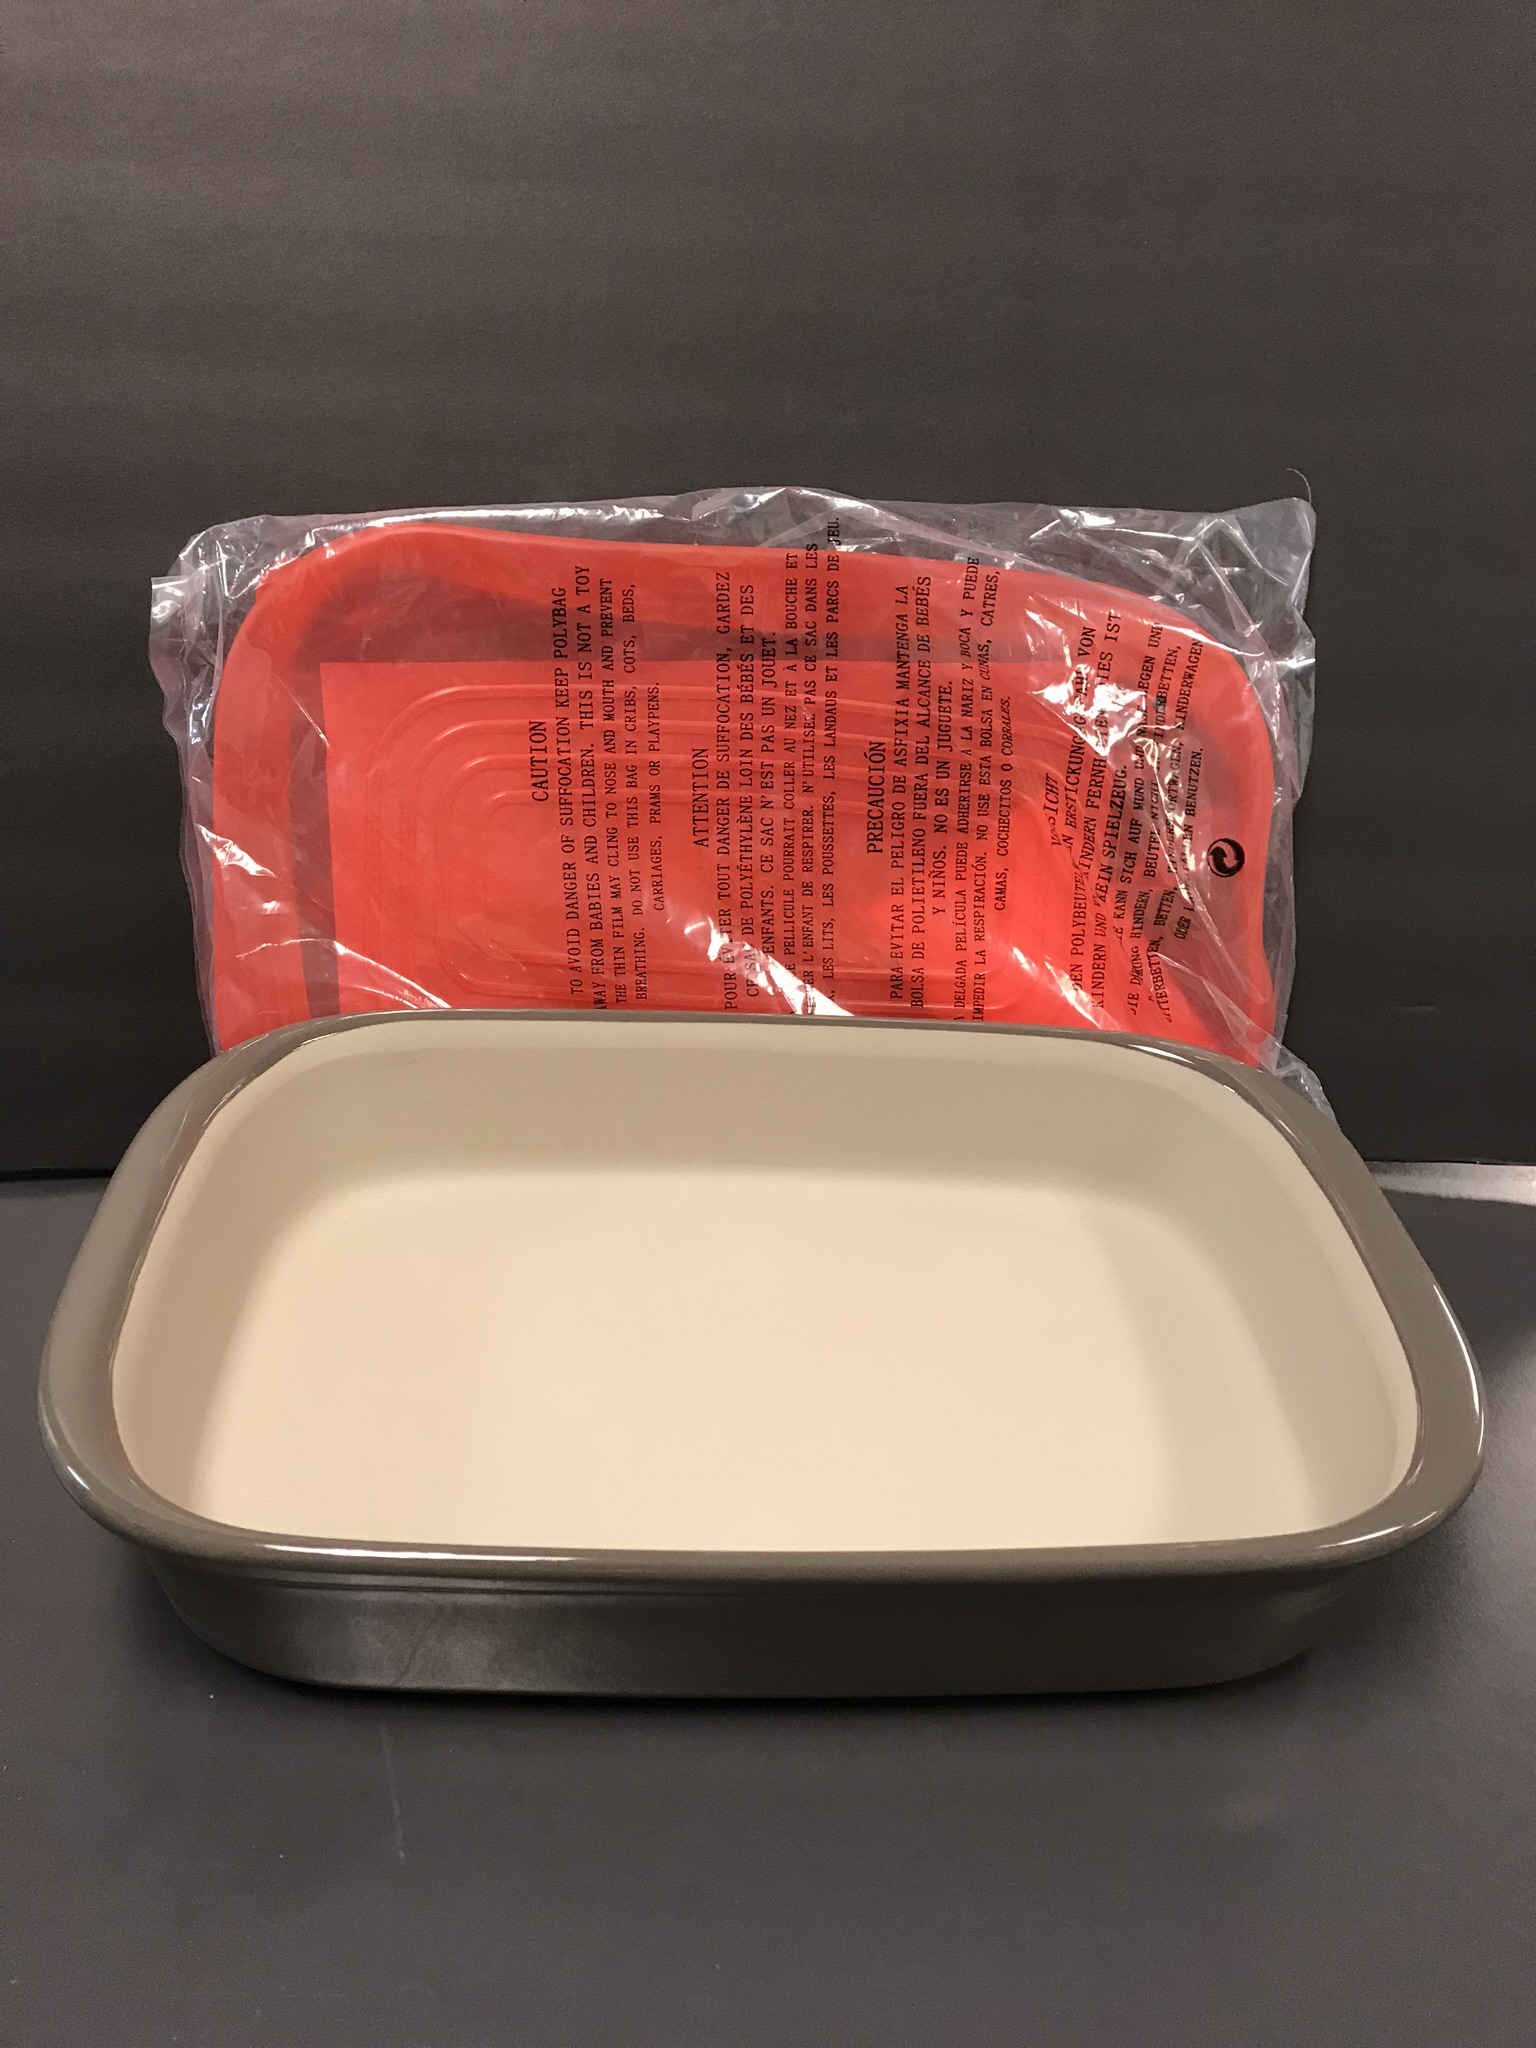 Pampered Chef Large Rectangular Baker with silicon lid - value $61